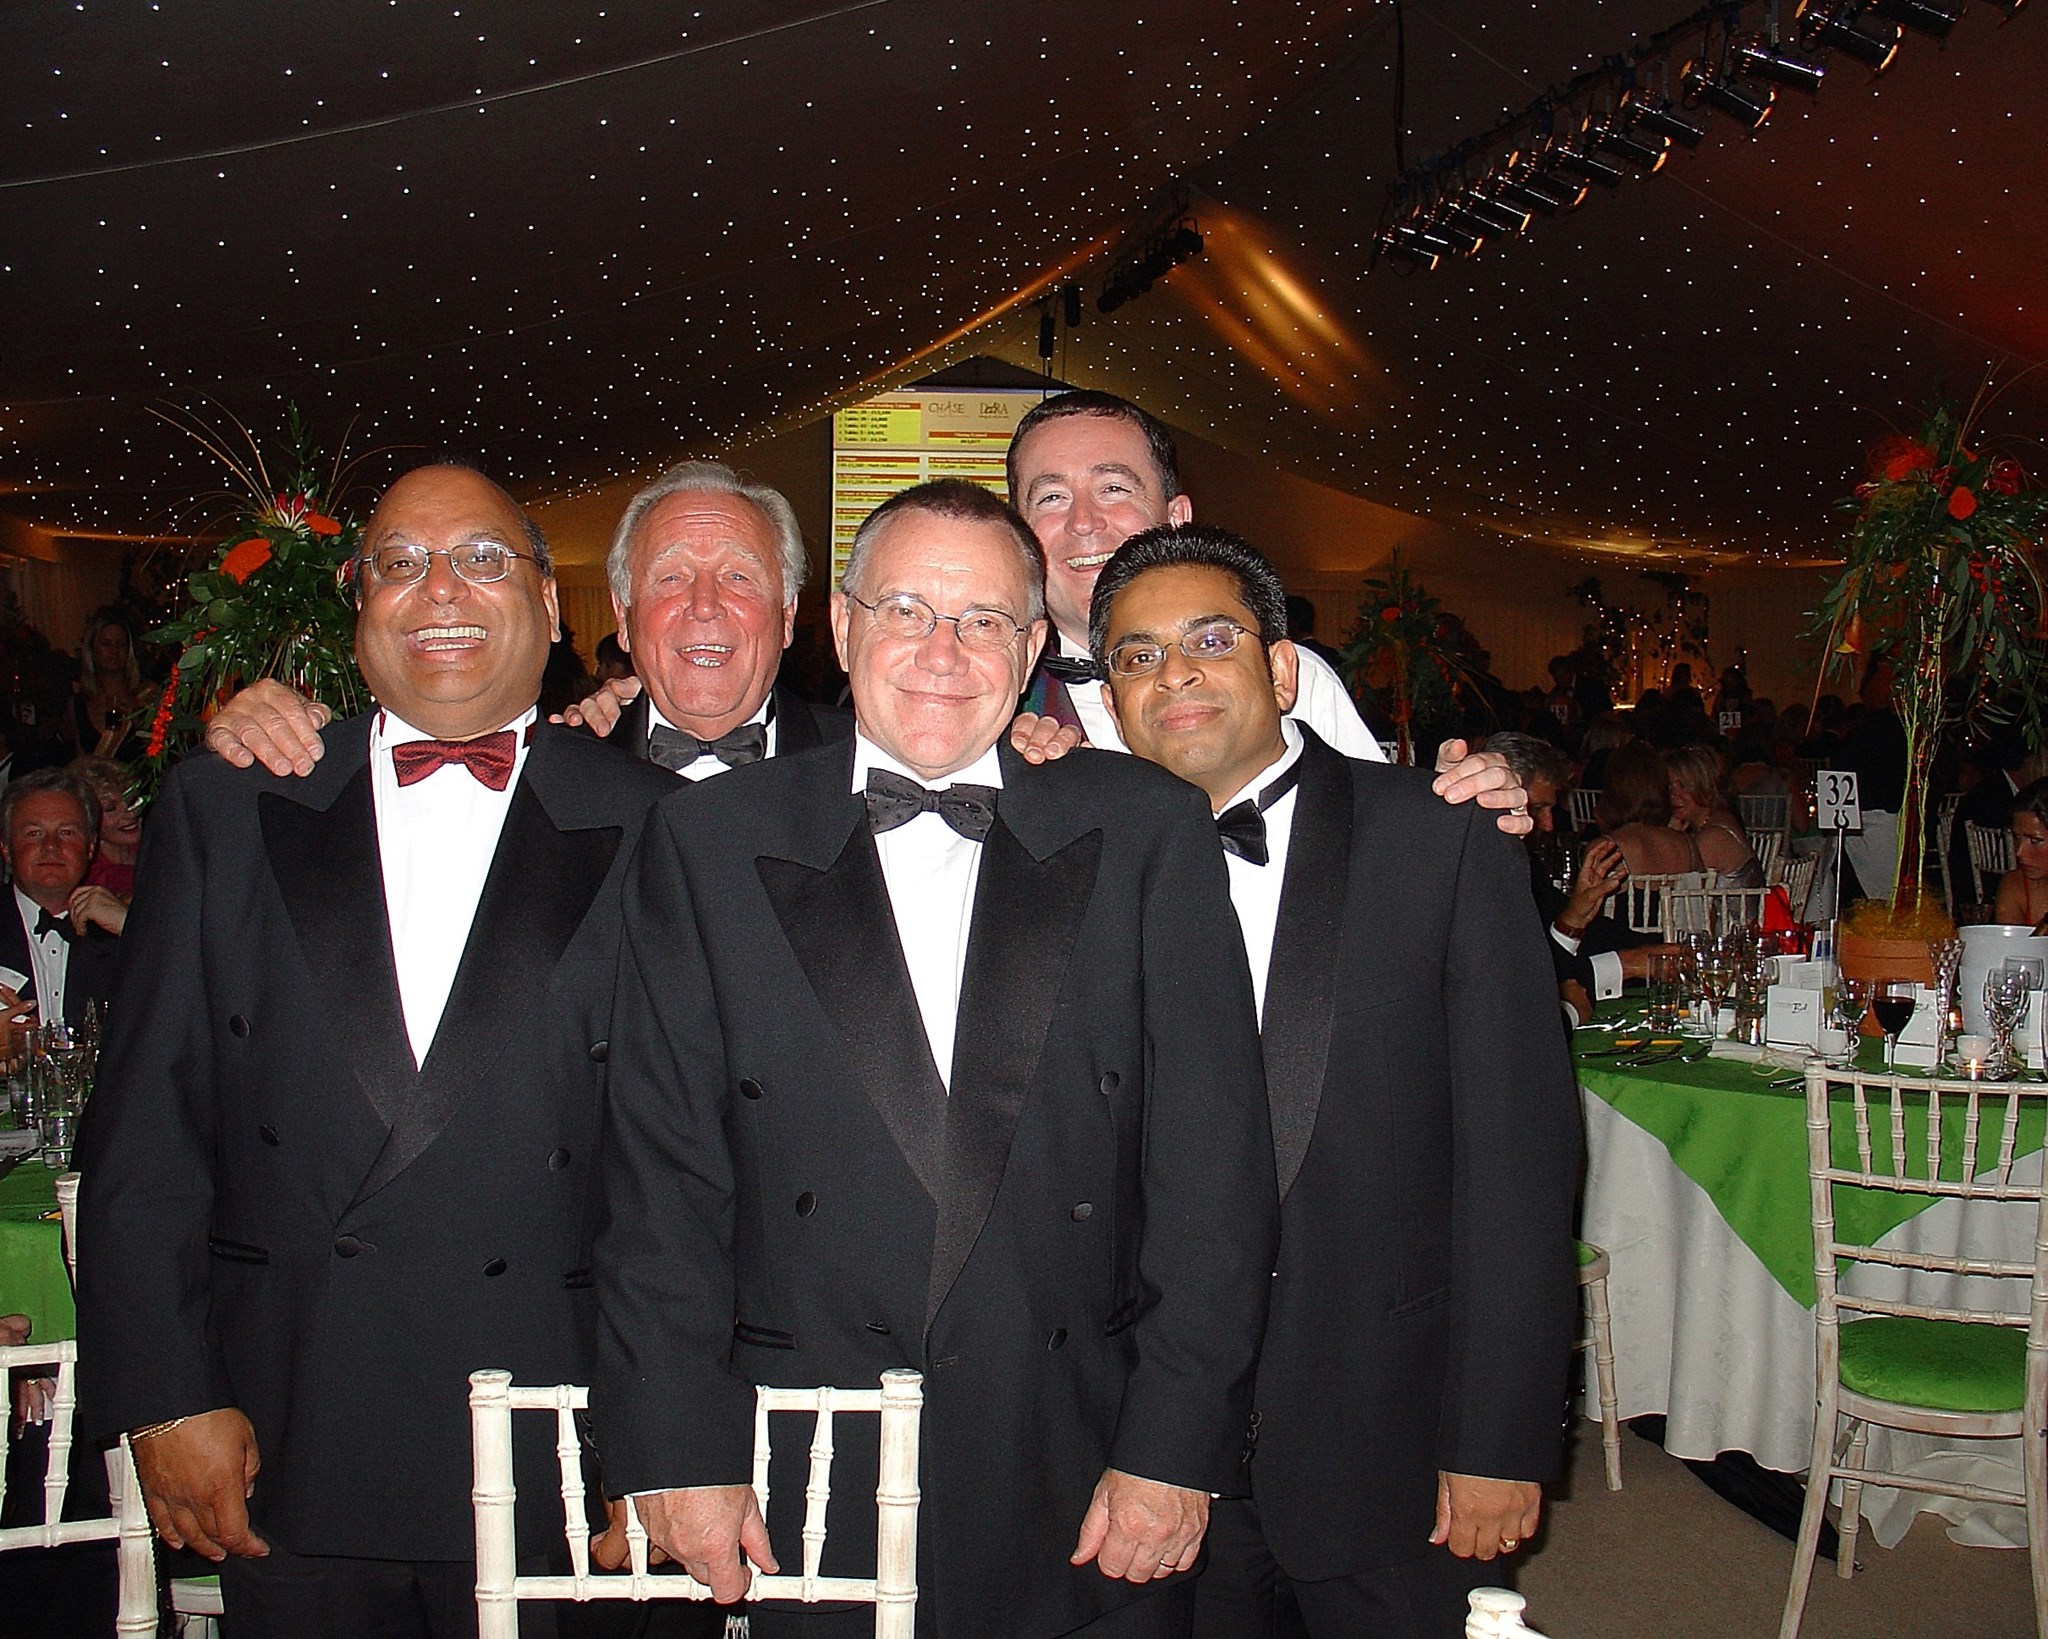 The South Harrow Club at Anthea Turner's charity function in 2004.